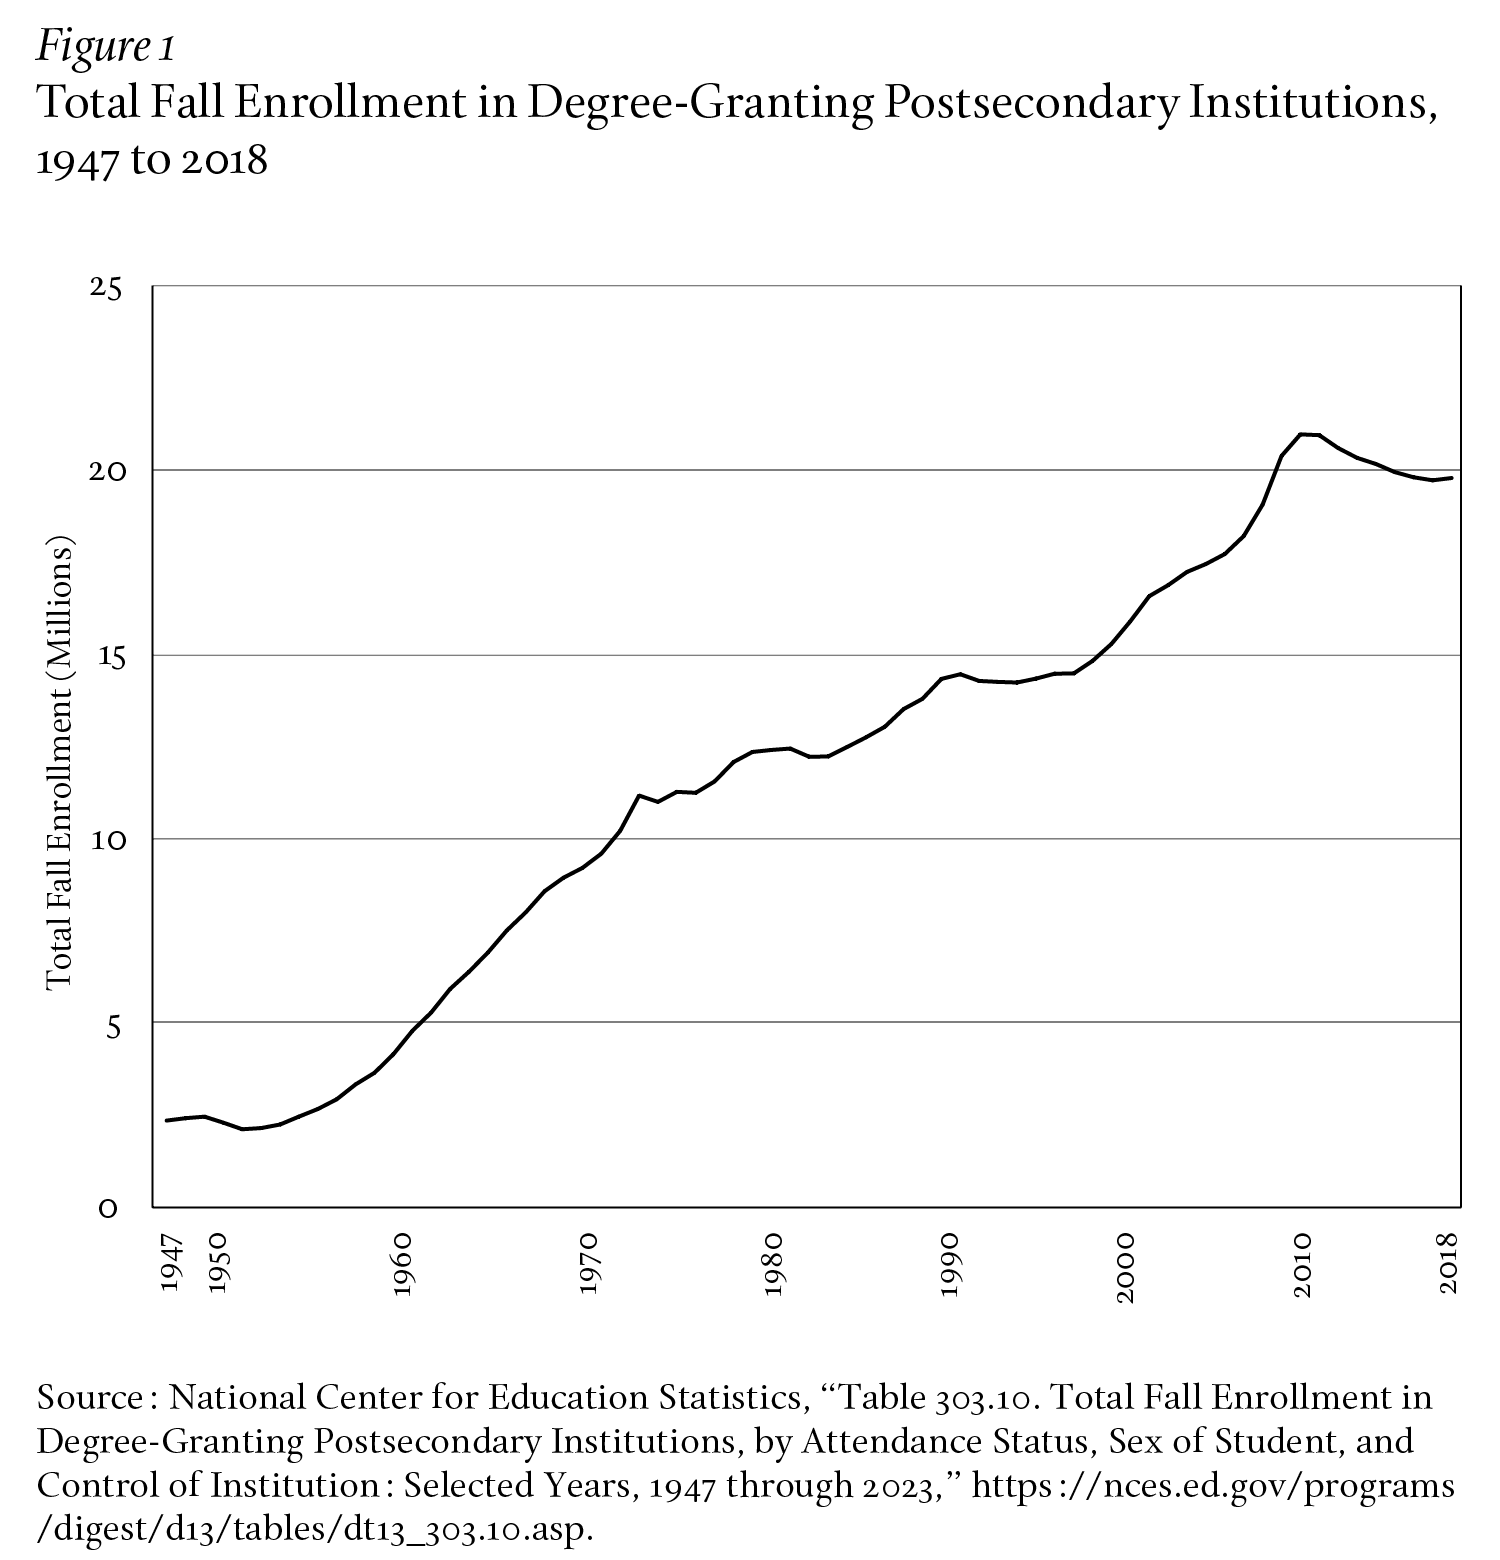 Total Fall Enrollment in Degree-Granting Postsecondary Institutions